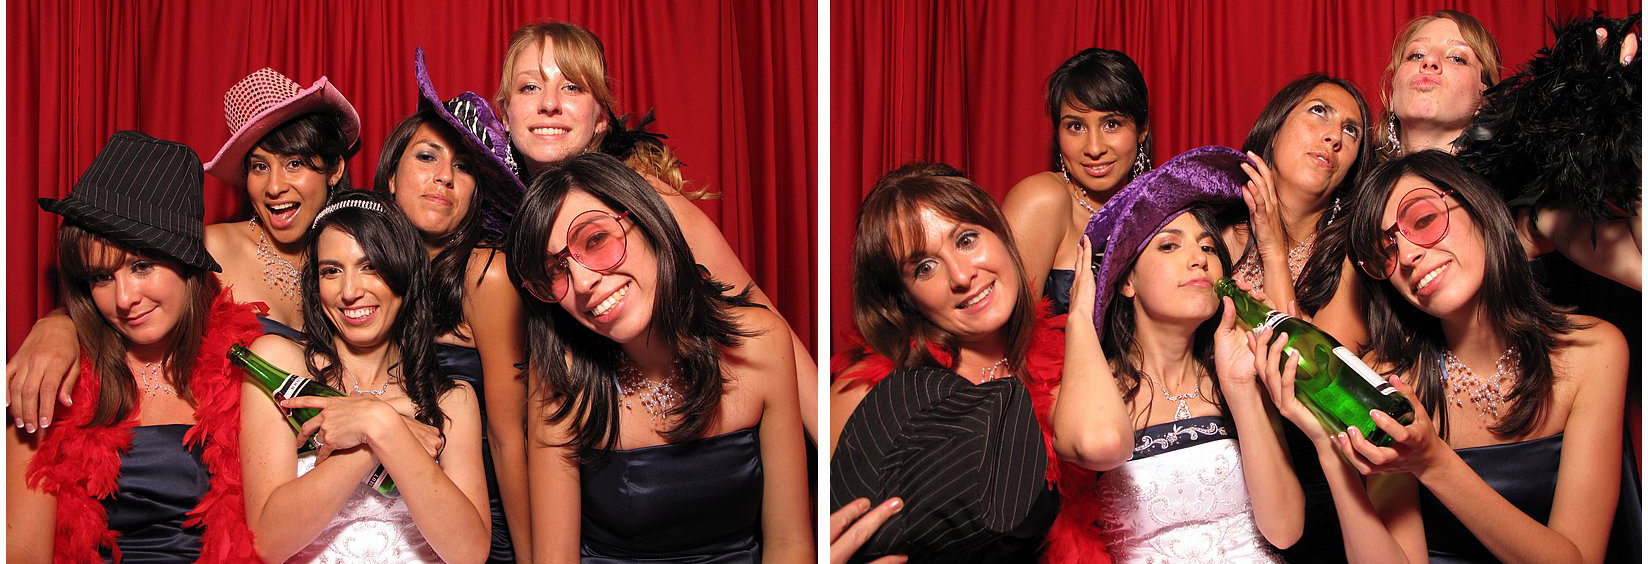 photo-booth-big-image